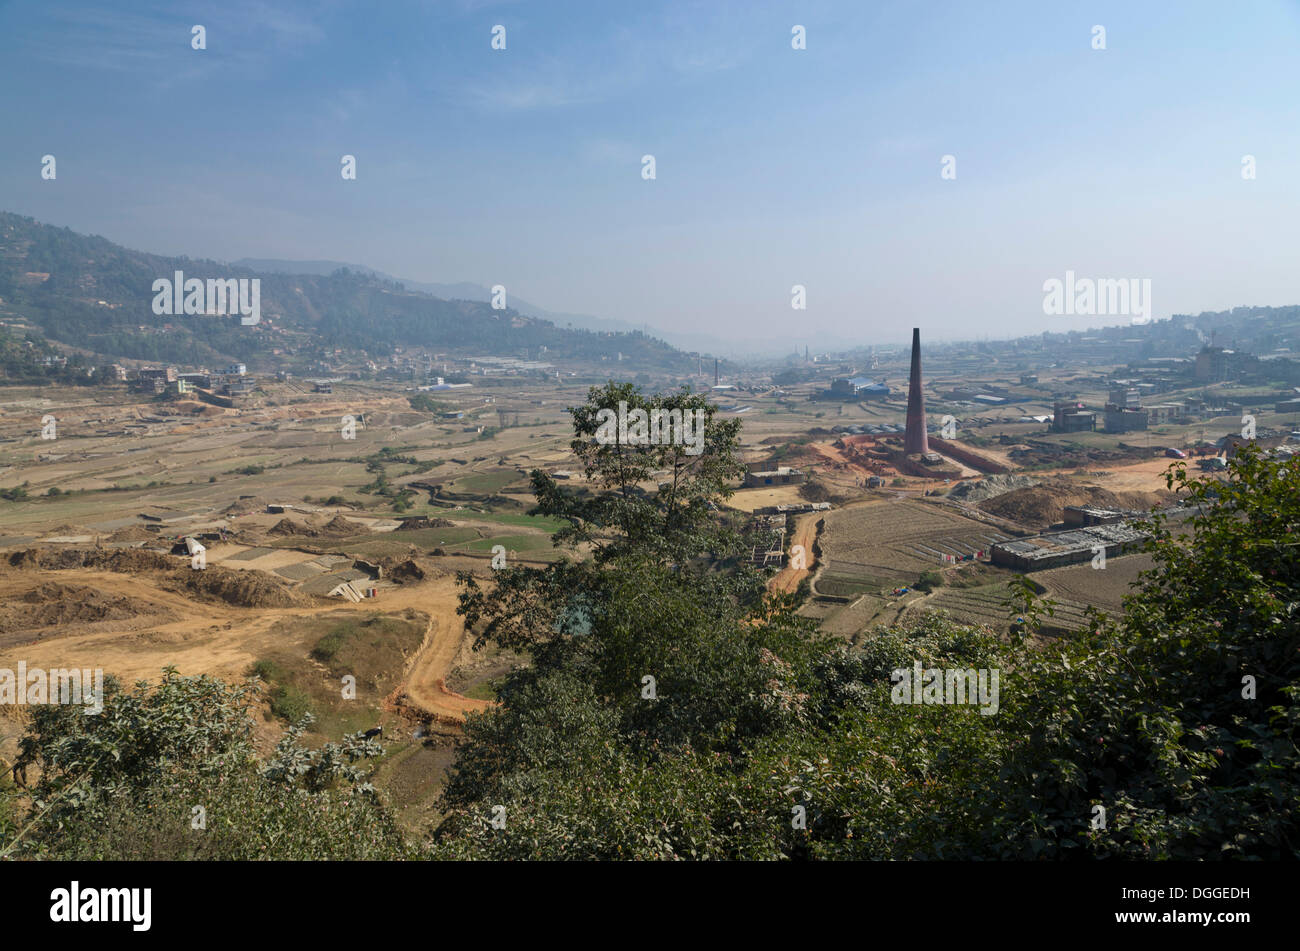 Brick factories located west of Kathmandu, west of Kathmandu, Kathmandu District, Bagmati Zone, Nepal - Stock Image